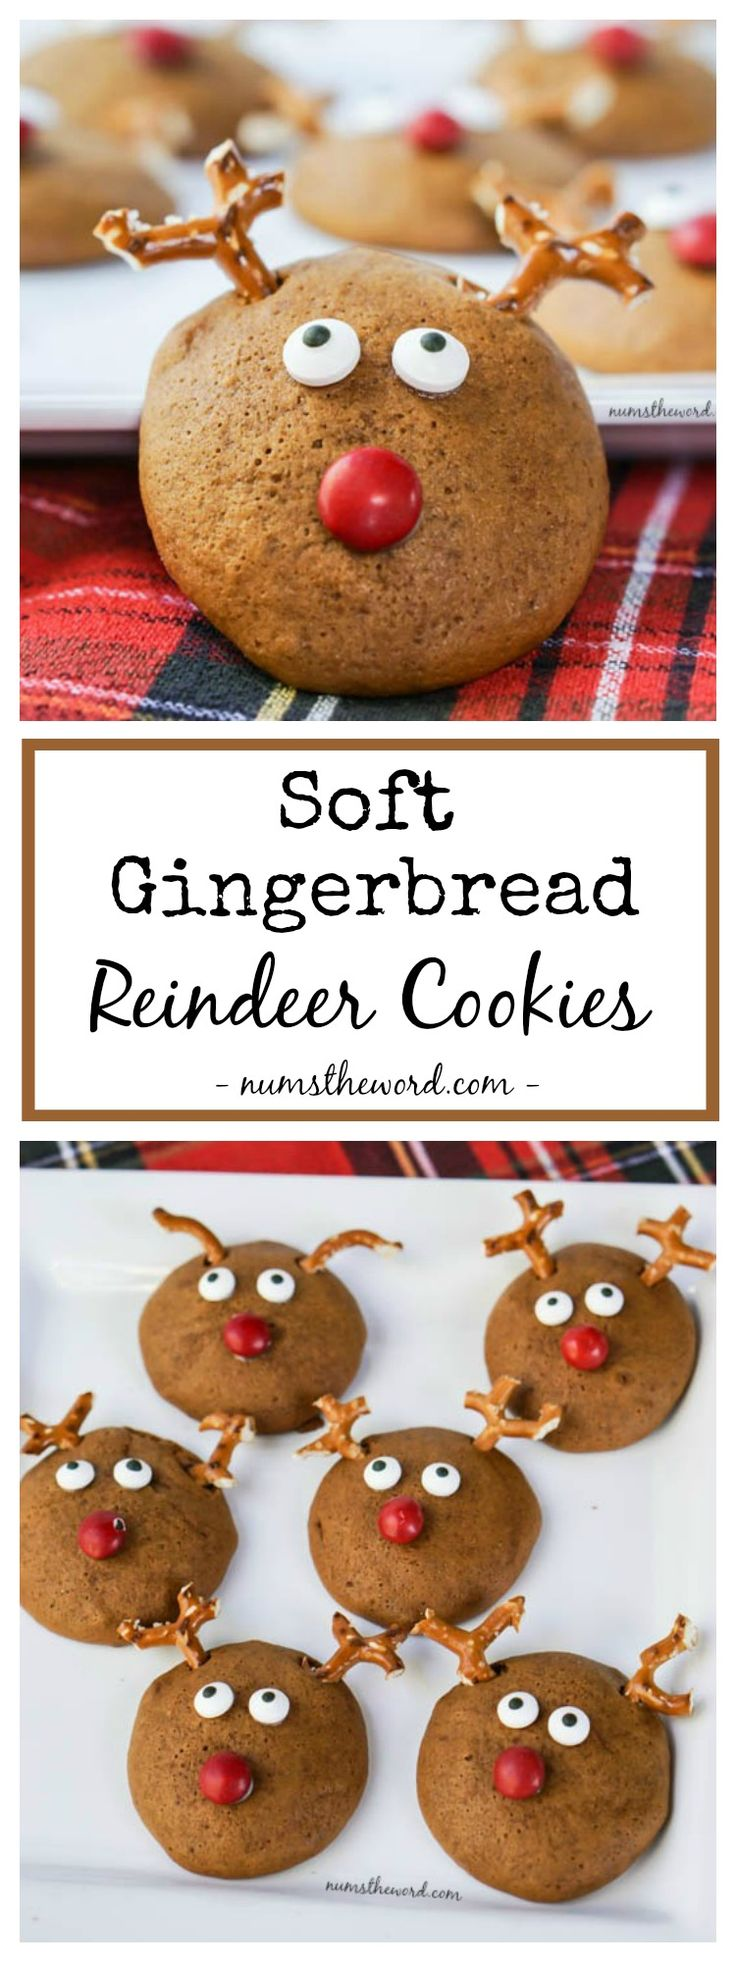 Soft Gingerbread Reindeer Cookies are fun, delicious and kid approved. Be a kid and play with your food again with these Fluffy Gingerbread cookies!